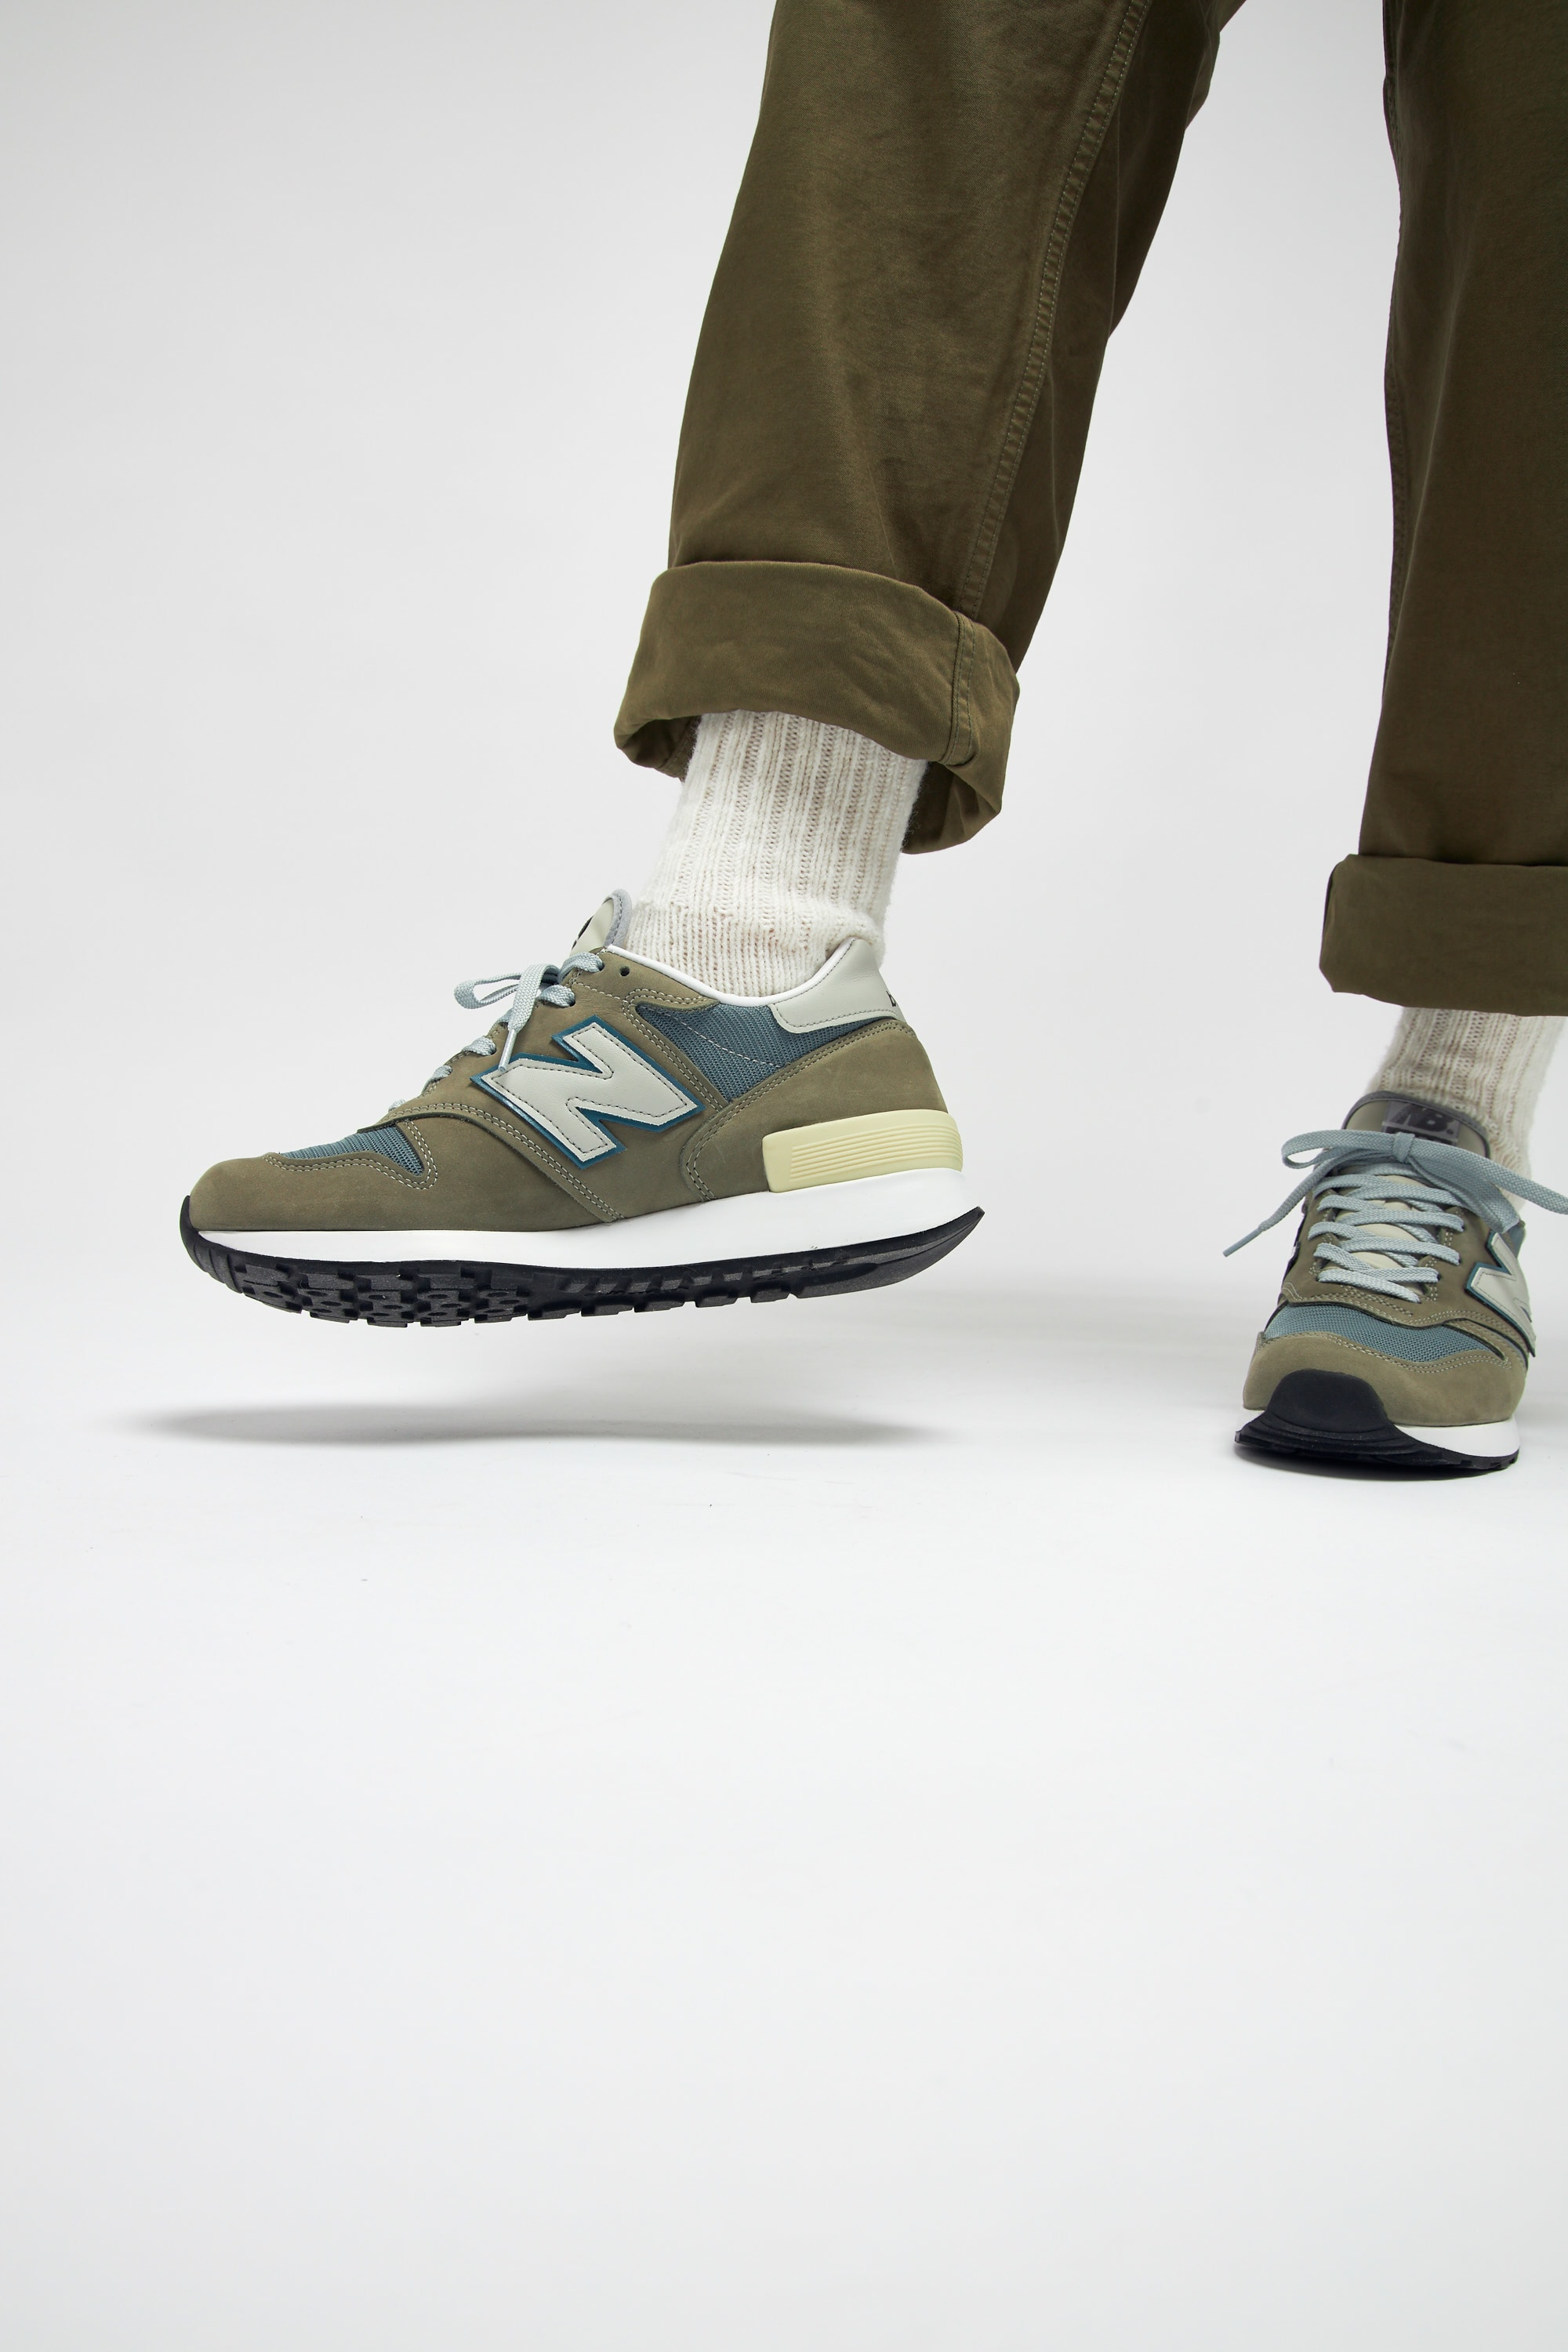 New Balance M1300JP3 Made in the USA '1300 Japan OG' - M1300JP3